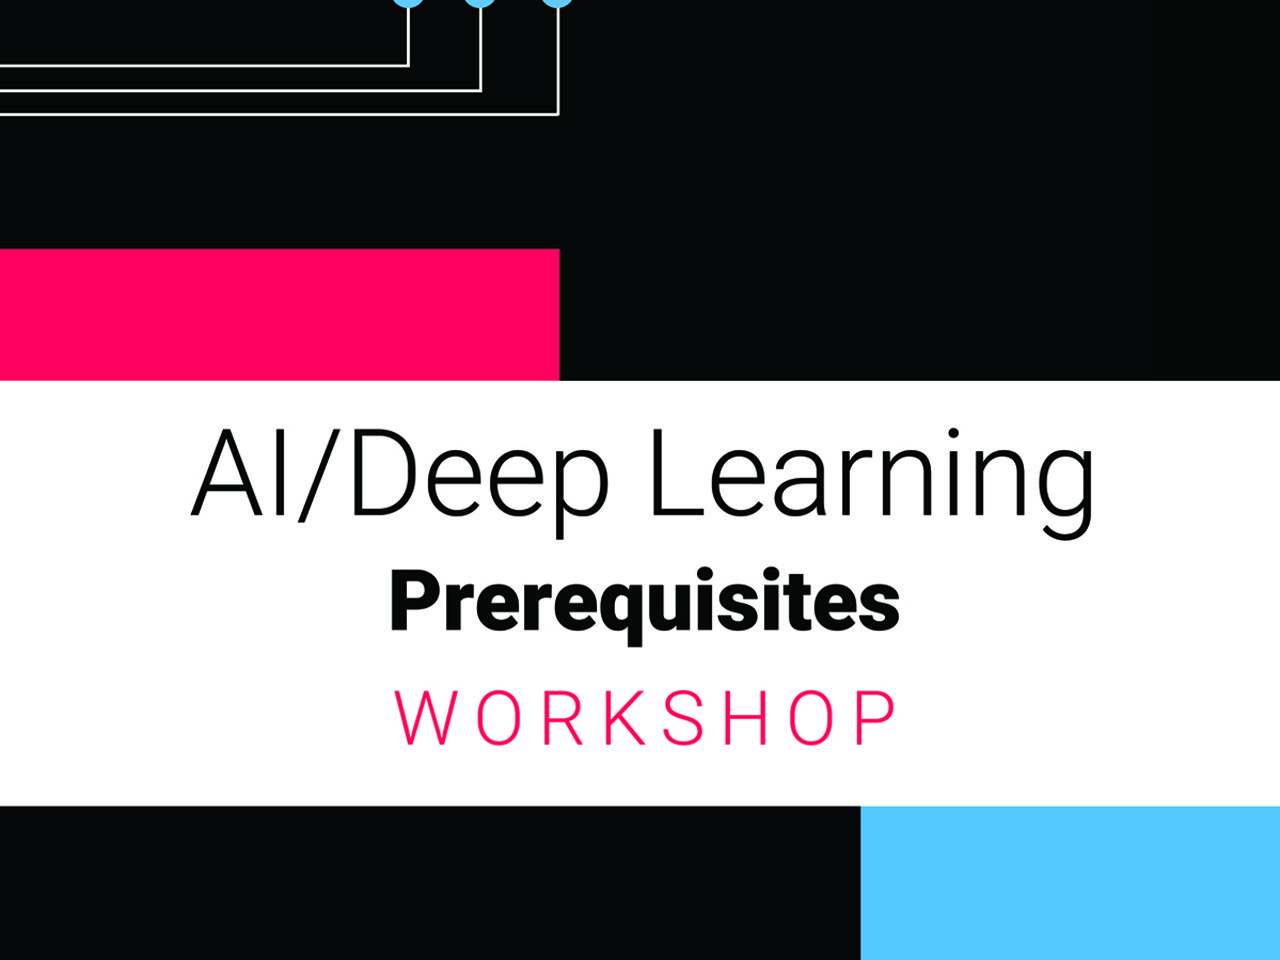 Workshop on AI/Deep Learning